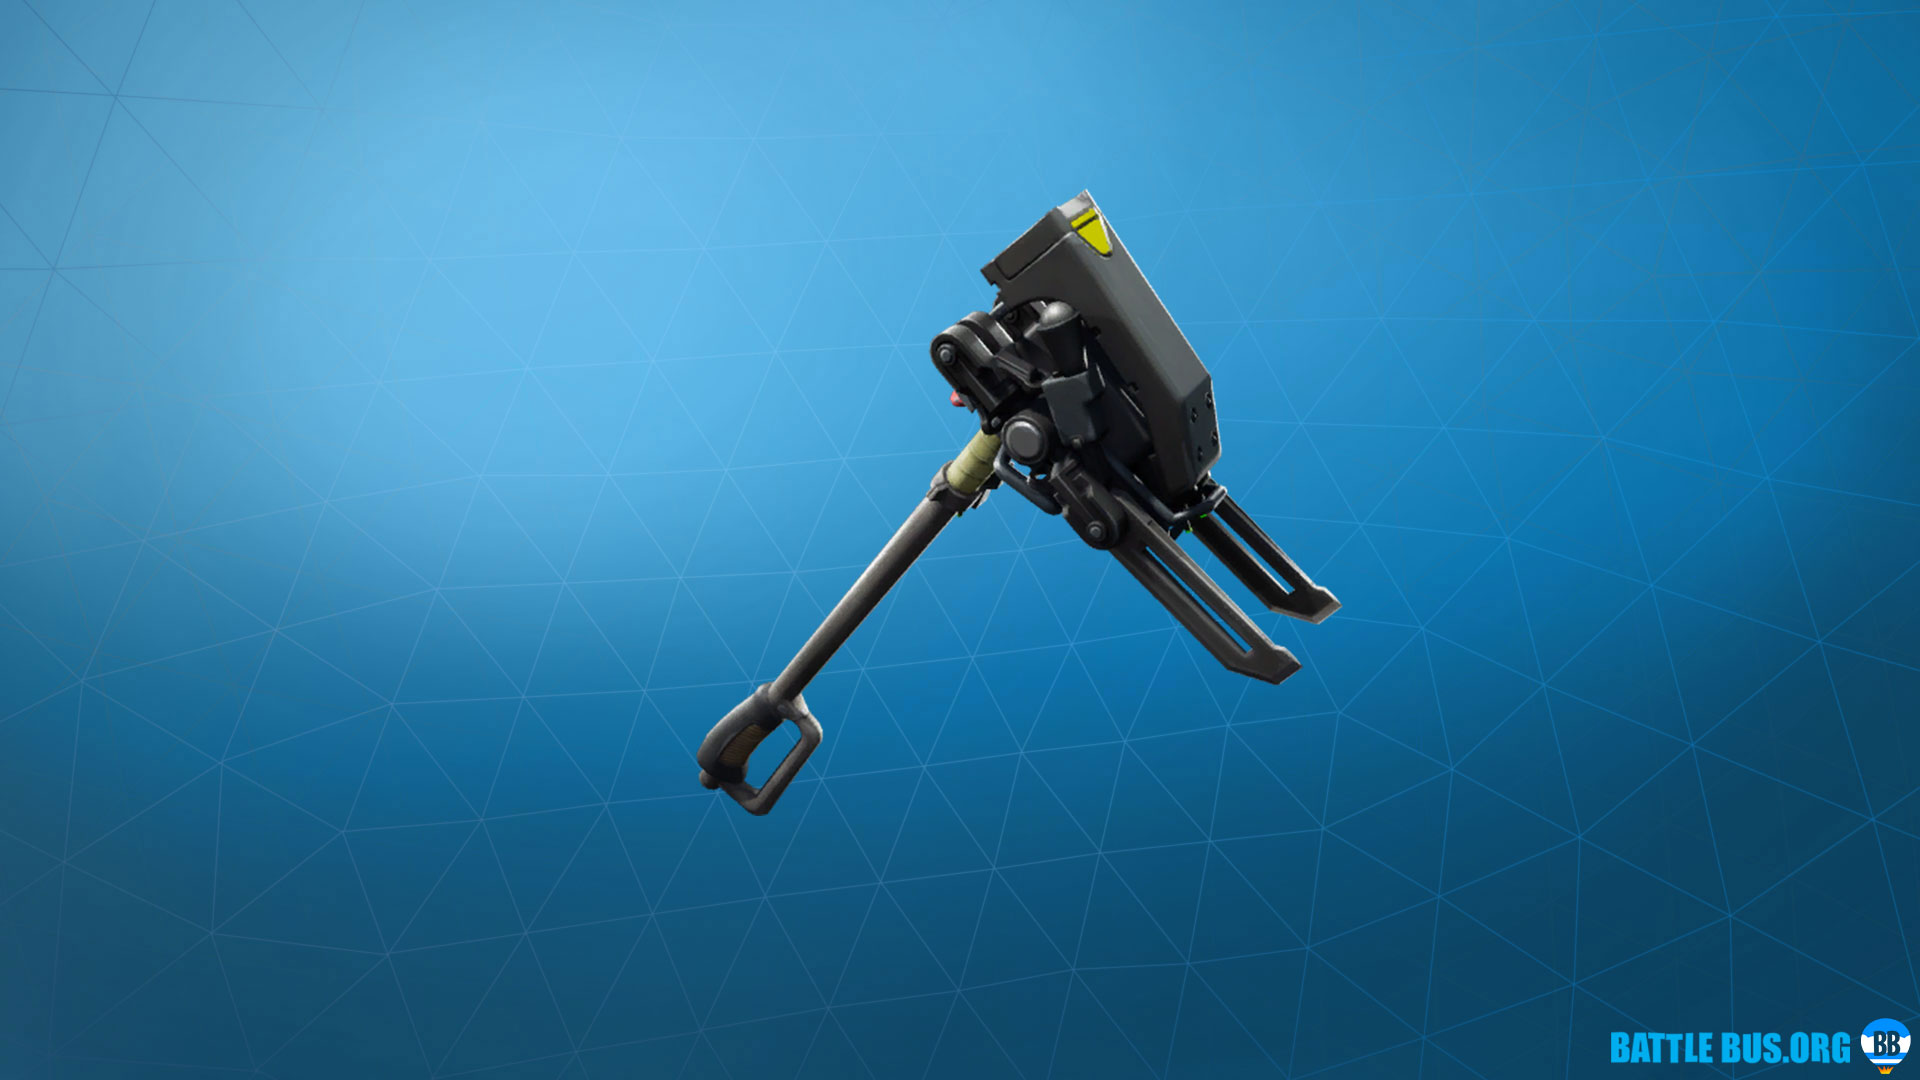 Armature pickaxe   Tech Ops Set fortnite skins info HD images 1920x1080